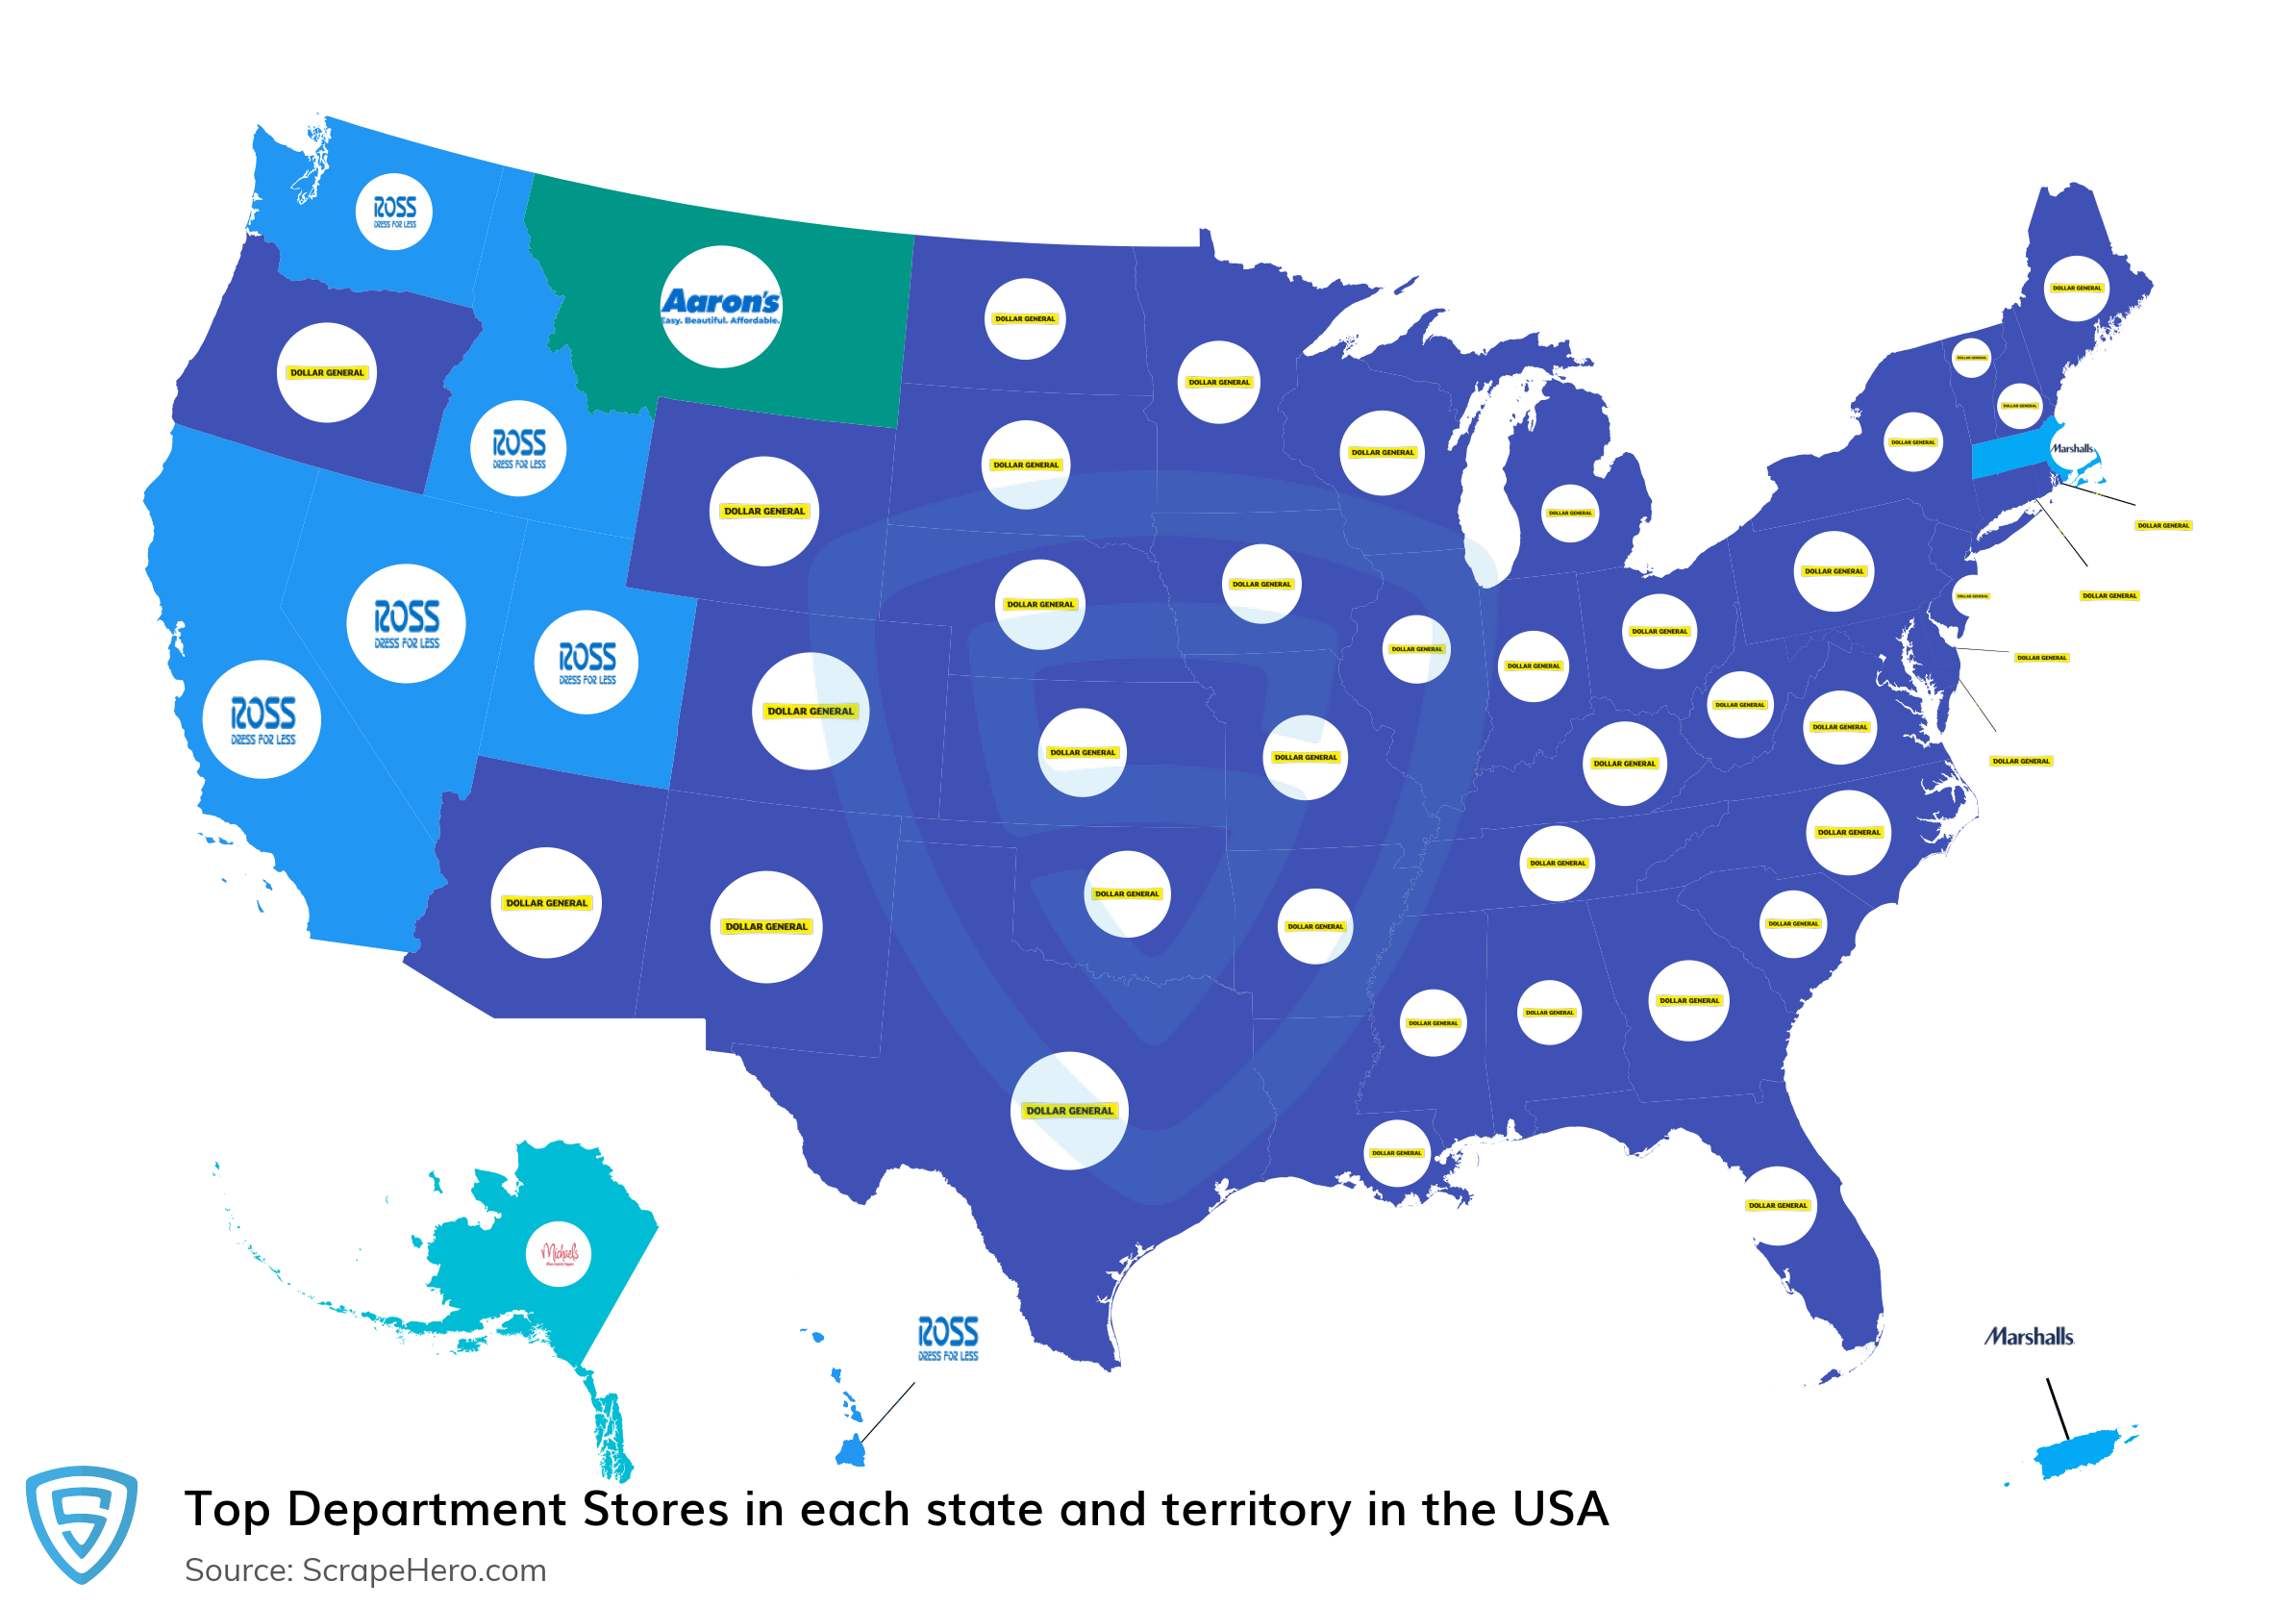 Map of top department stores in each state and territory in the United States in 2021